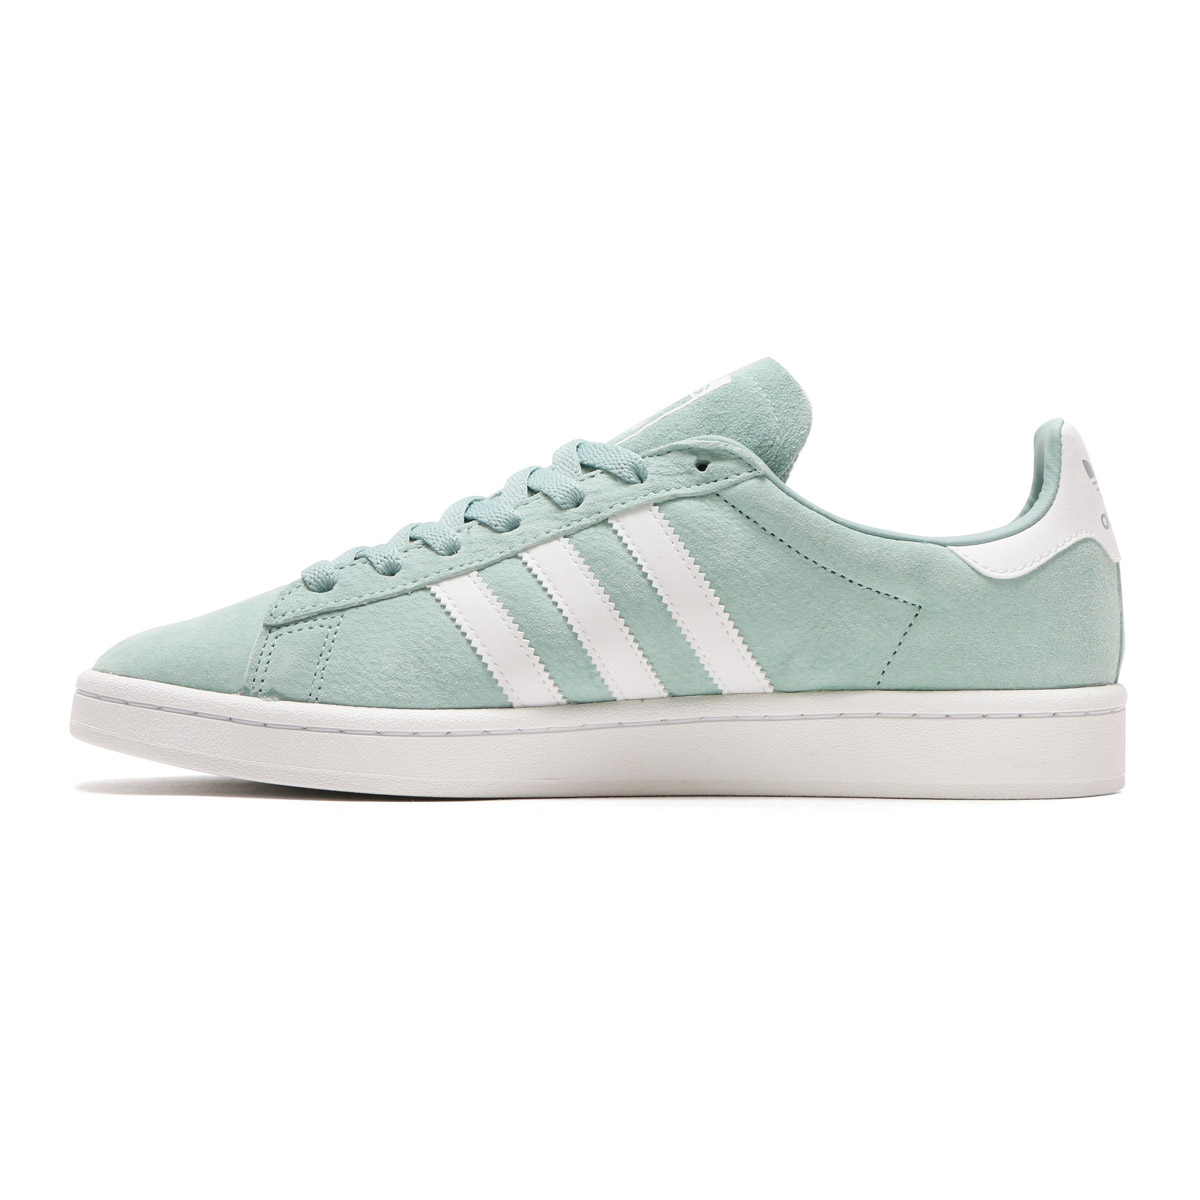 adidas samoa tactile green nz